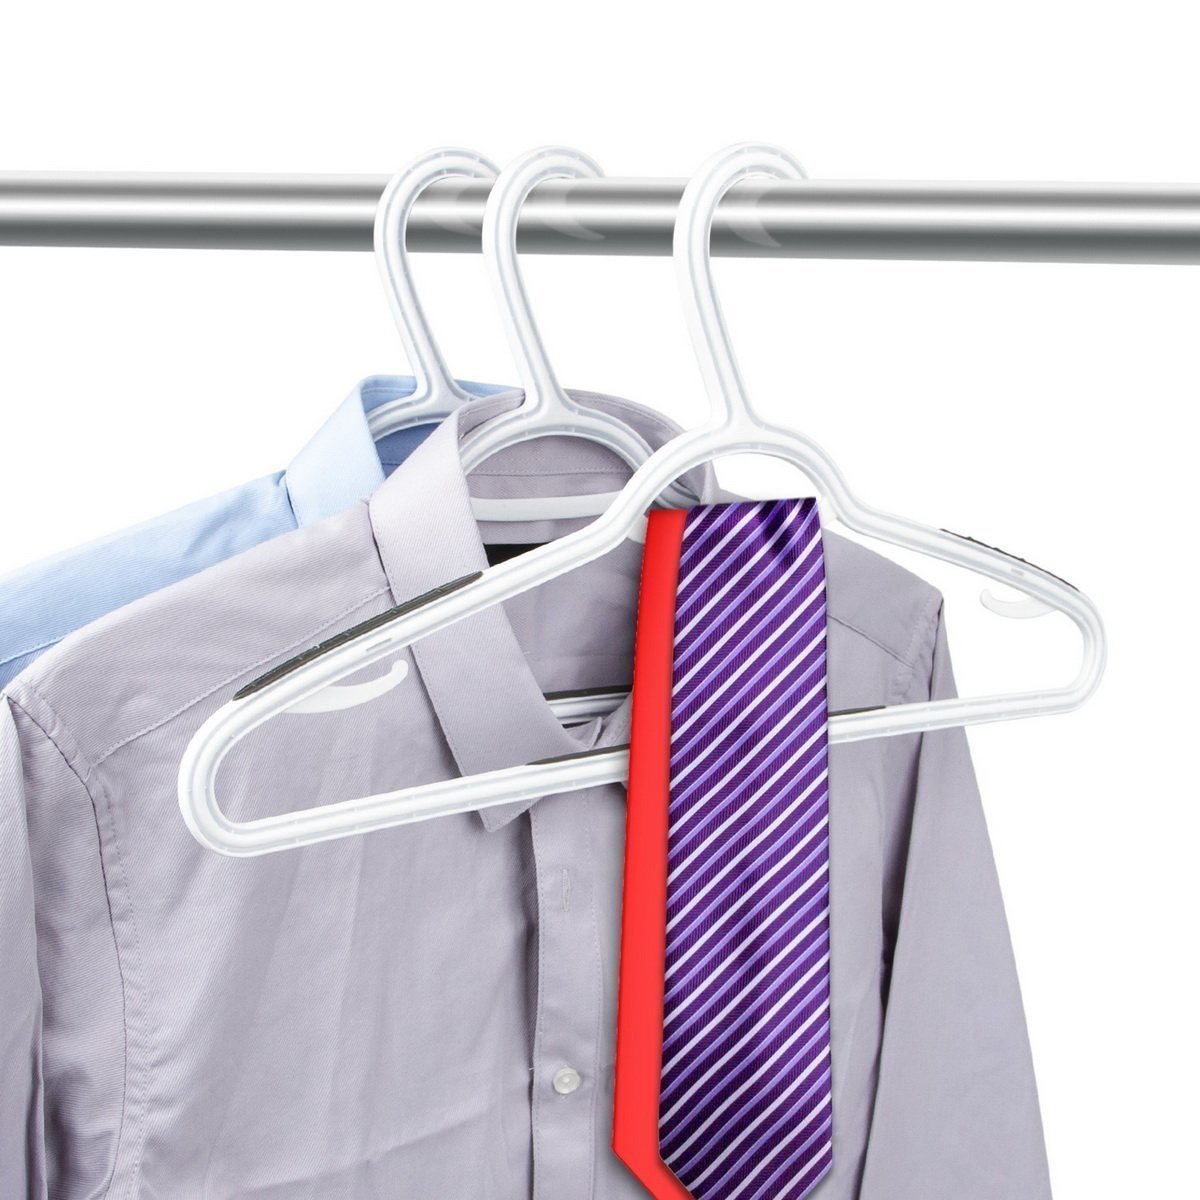 Try timmy plastic hangers 40 pack heavy duty clothes hangers with built in grip non slip pads space saving super lightweight organizer for closet wardrobe perfect for blouses shirts and morewhite grey